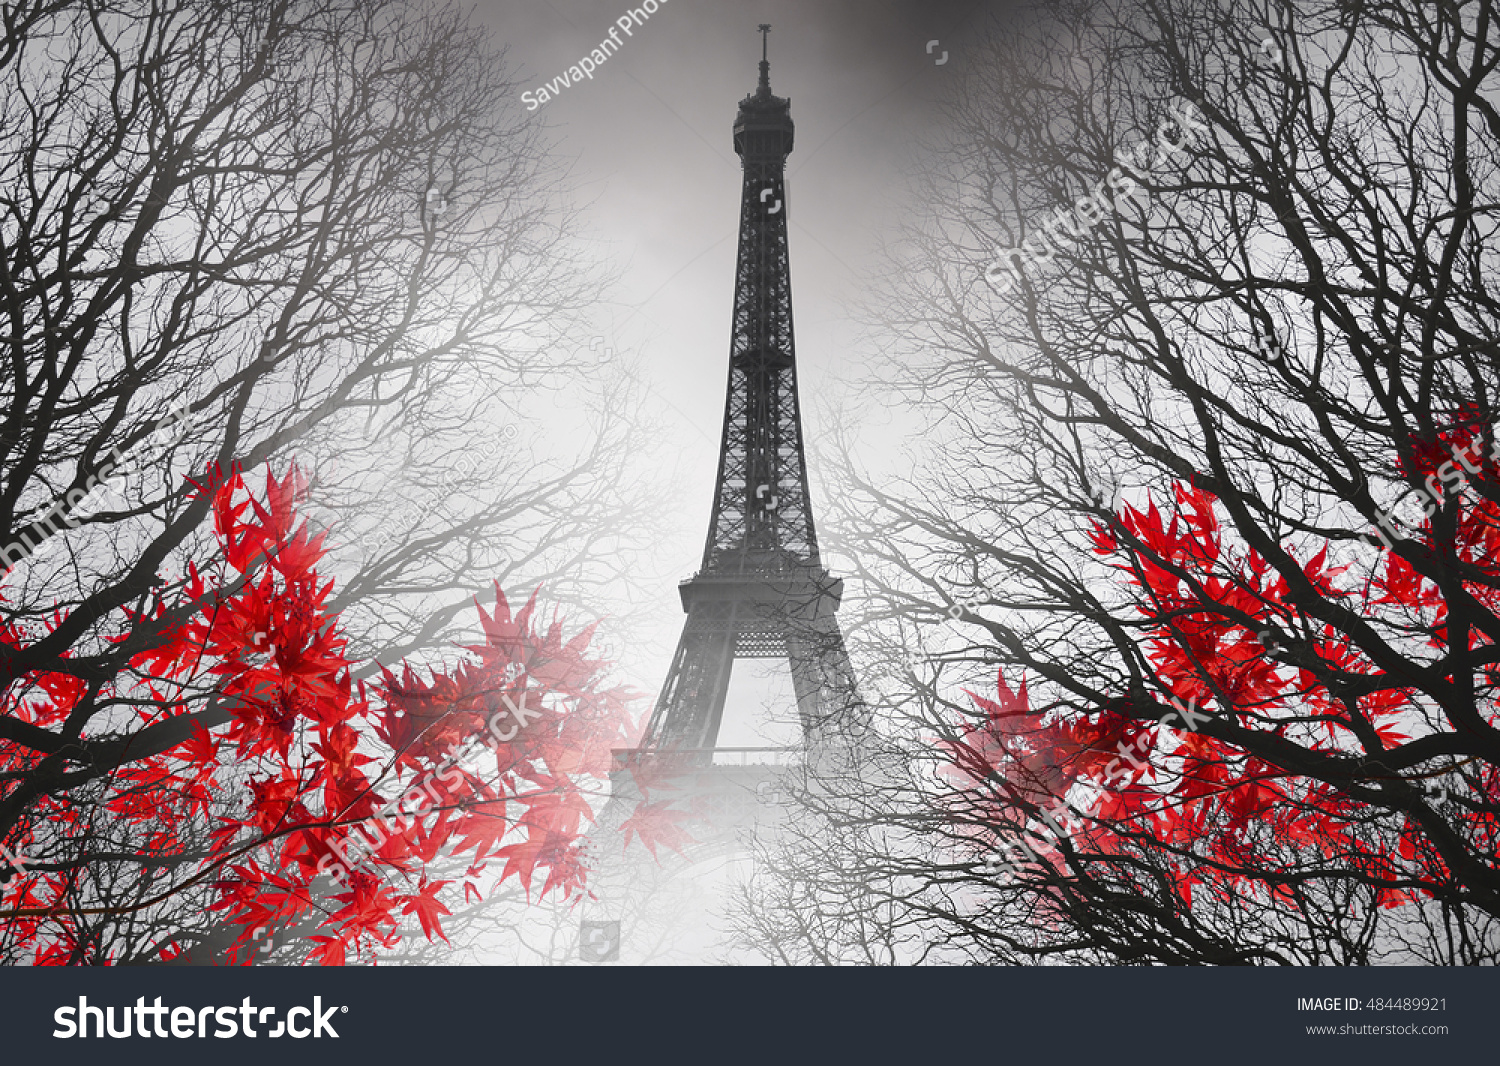 Eiffel Tower in Paris autumn picture